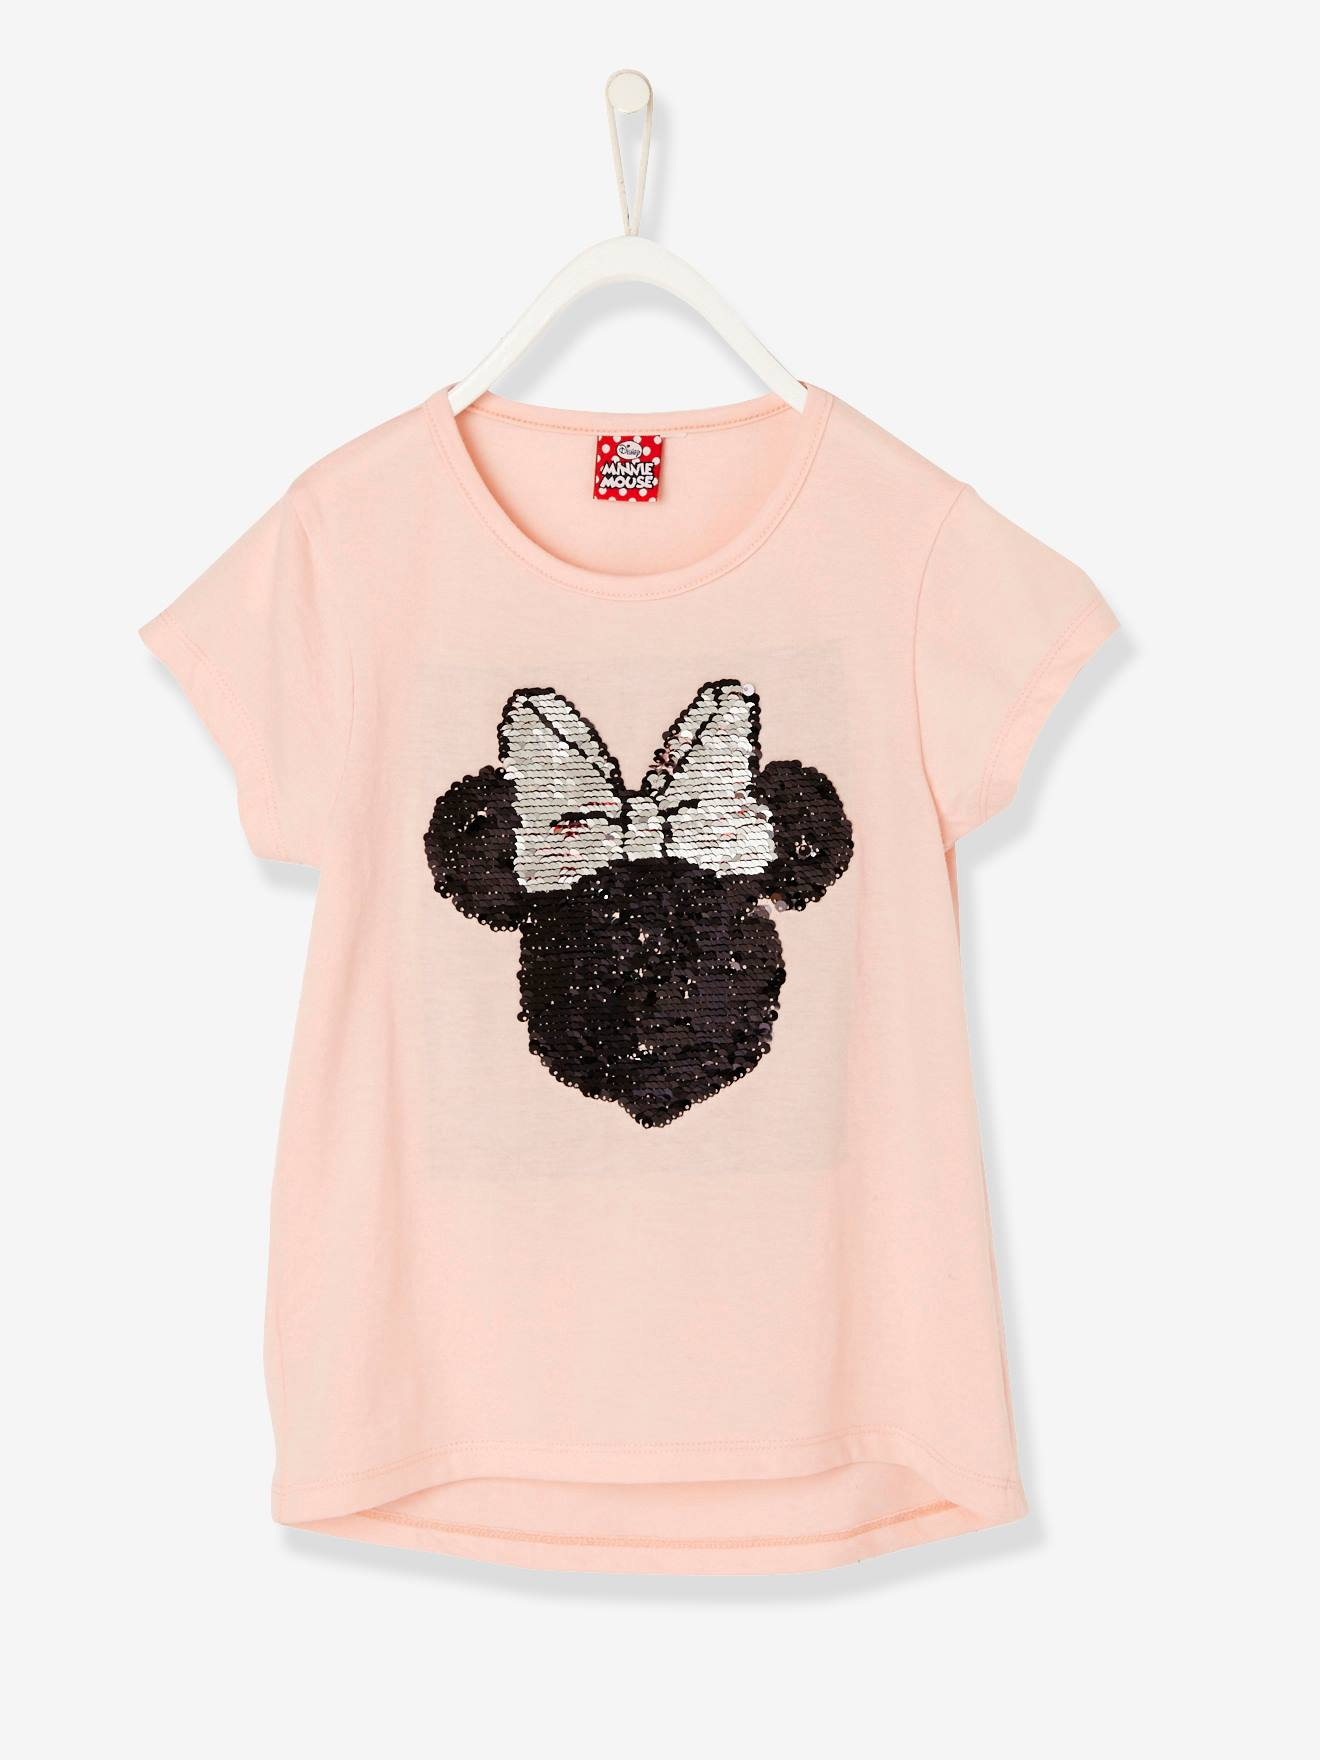 32204df0ce044 tee shirt fille 4 ans - www.goldpoint.be